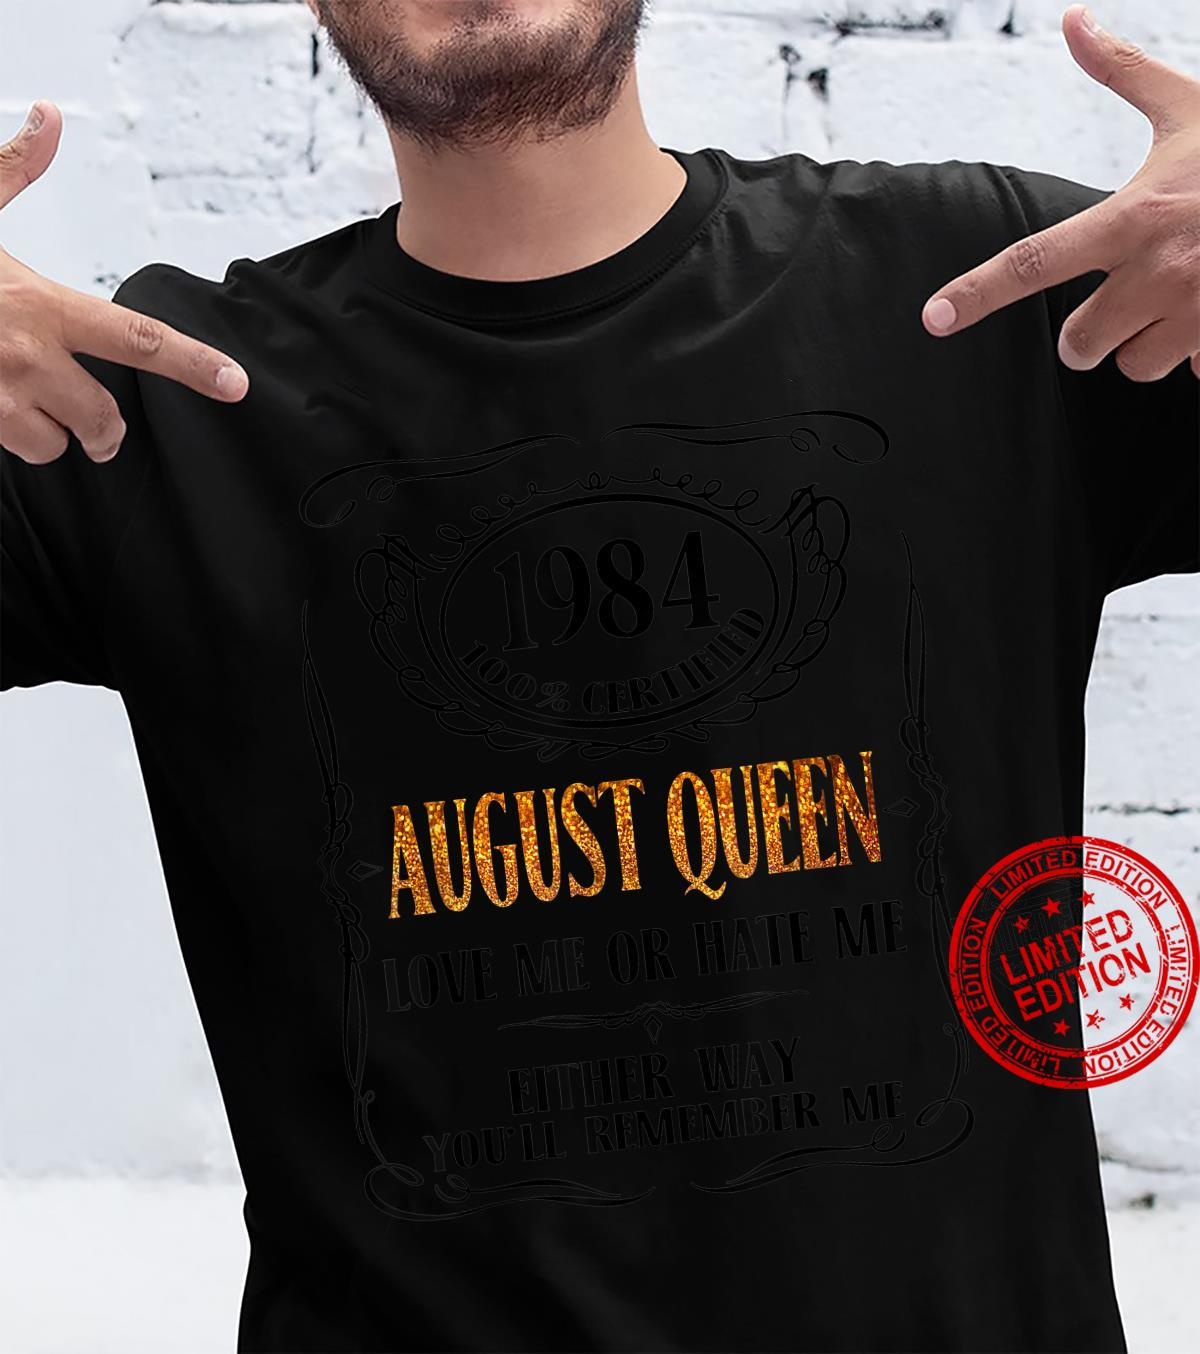 1984 100% Certified August Queen Love Me Or Hate Me Shirt